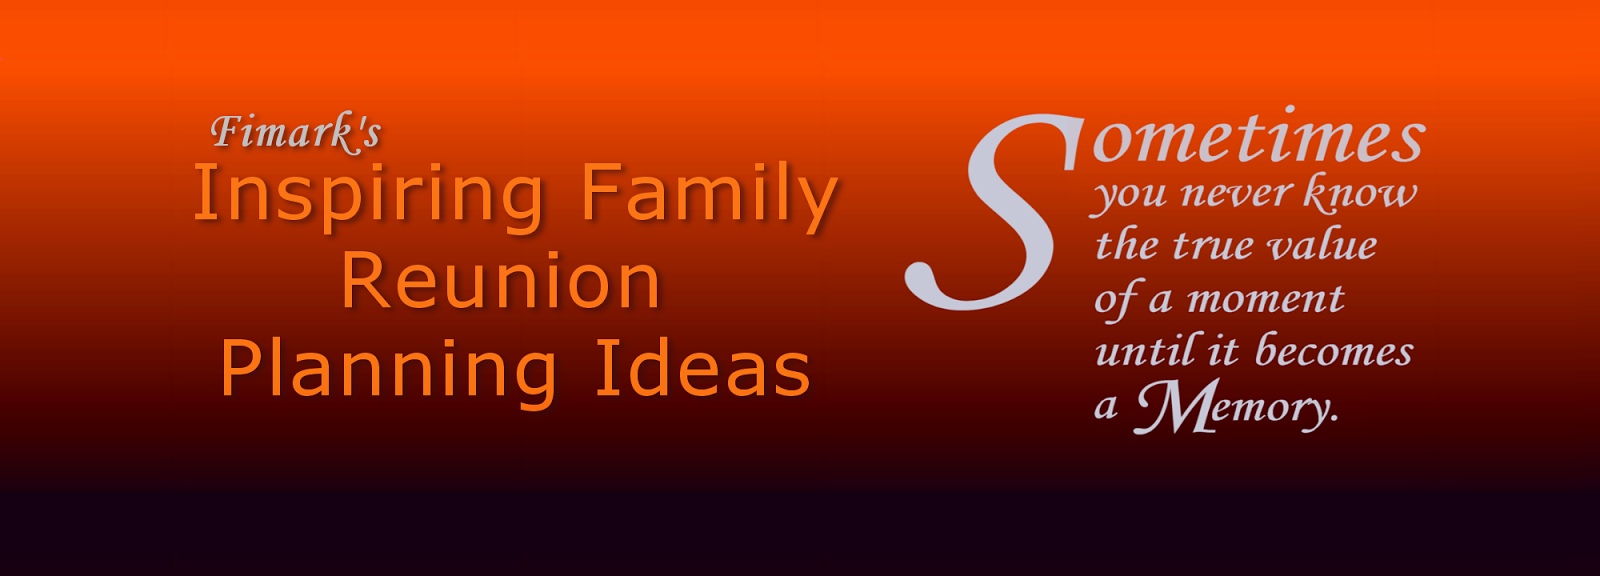 Family Reunion Planning Guides Apps And Books Winning Event